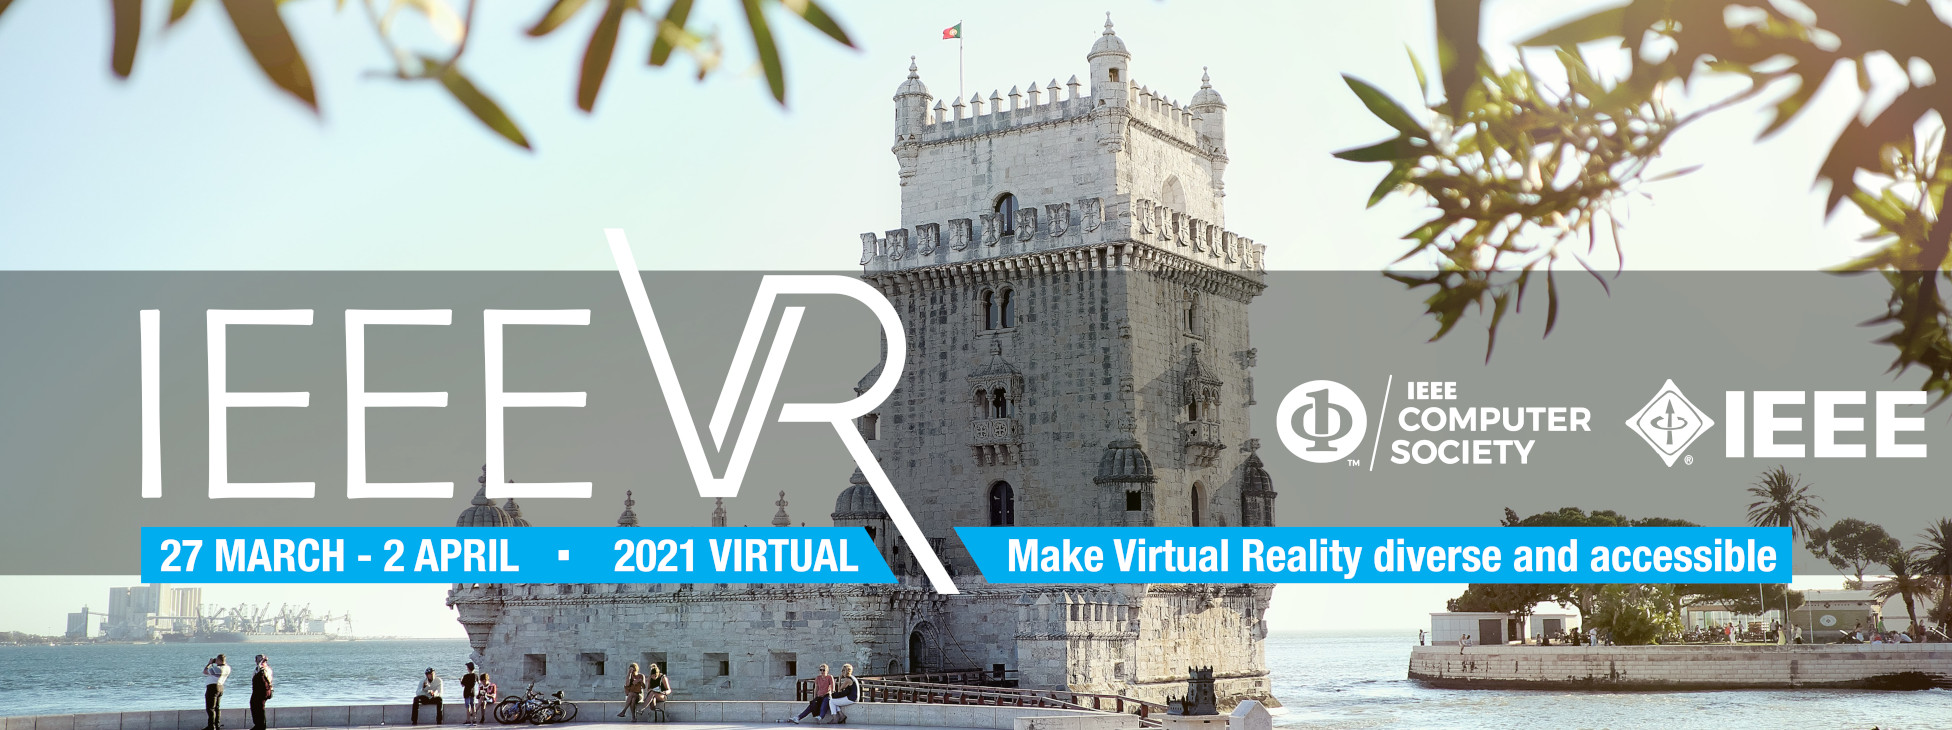 Image of the Belem Tower in Lisbon along with a view for the Tagus river. And the Logo for IEEEVR Lisbon 2021 with the moto: make virtual reality diverse and acessible.